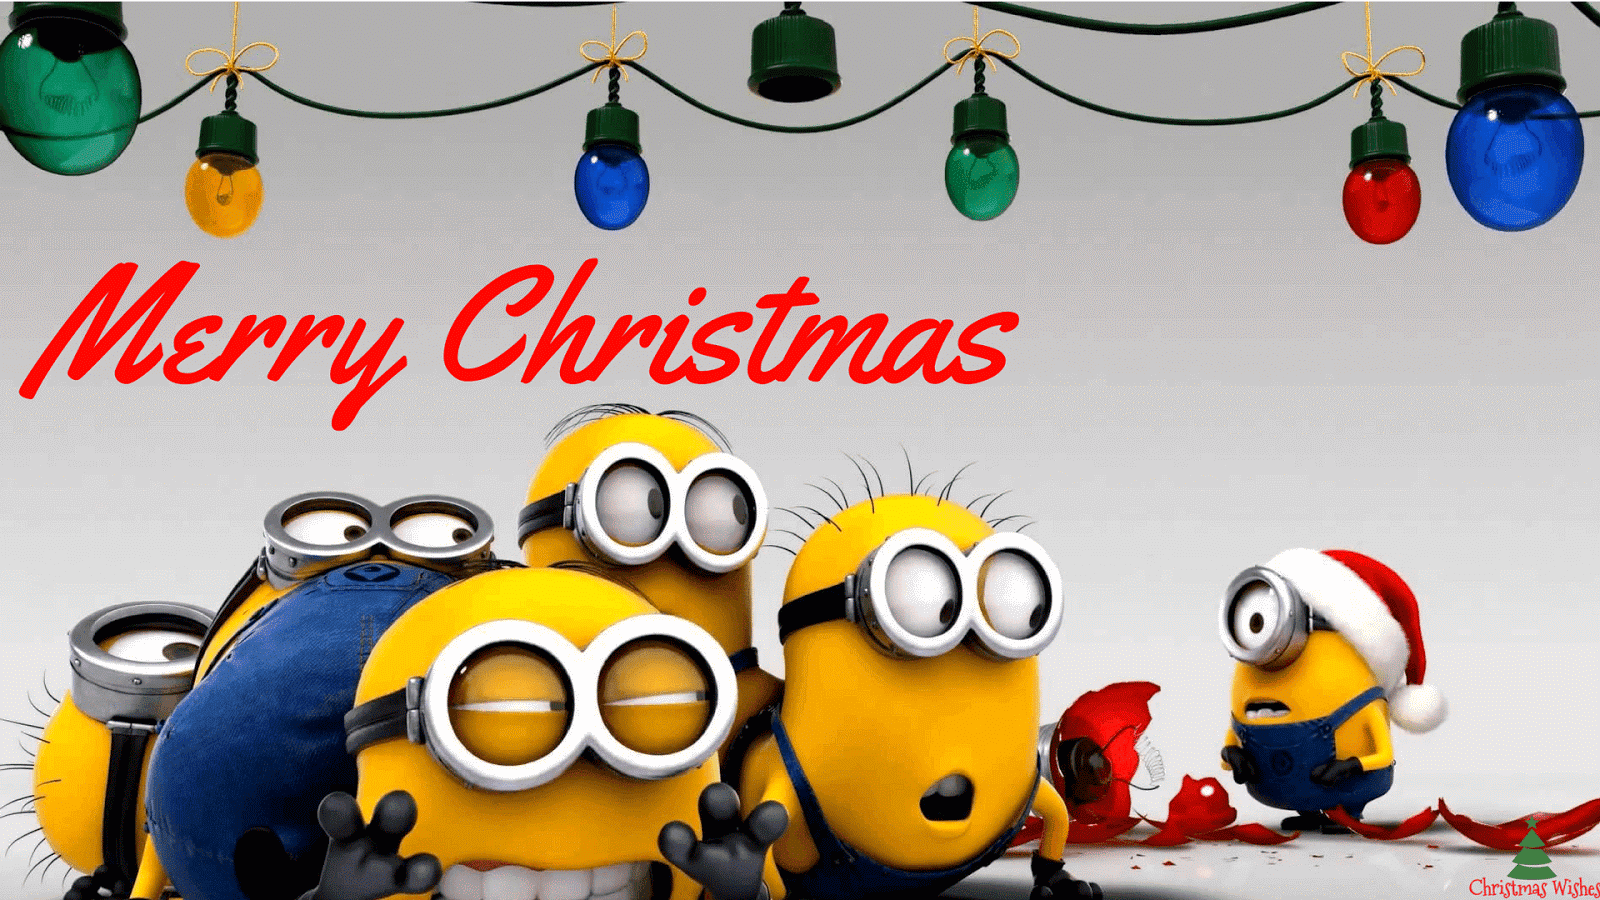 10 amazing minions merry christmas wallpapers will blow your mind frohes weihnachten und. Black Bedroom Furniture Sets. Home Design Ideas